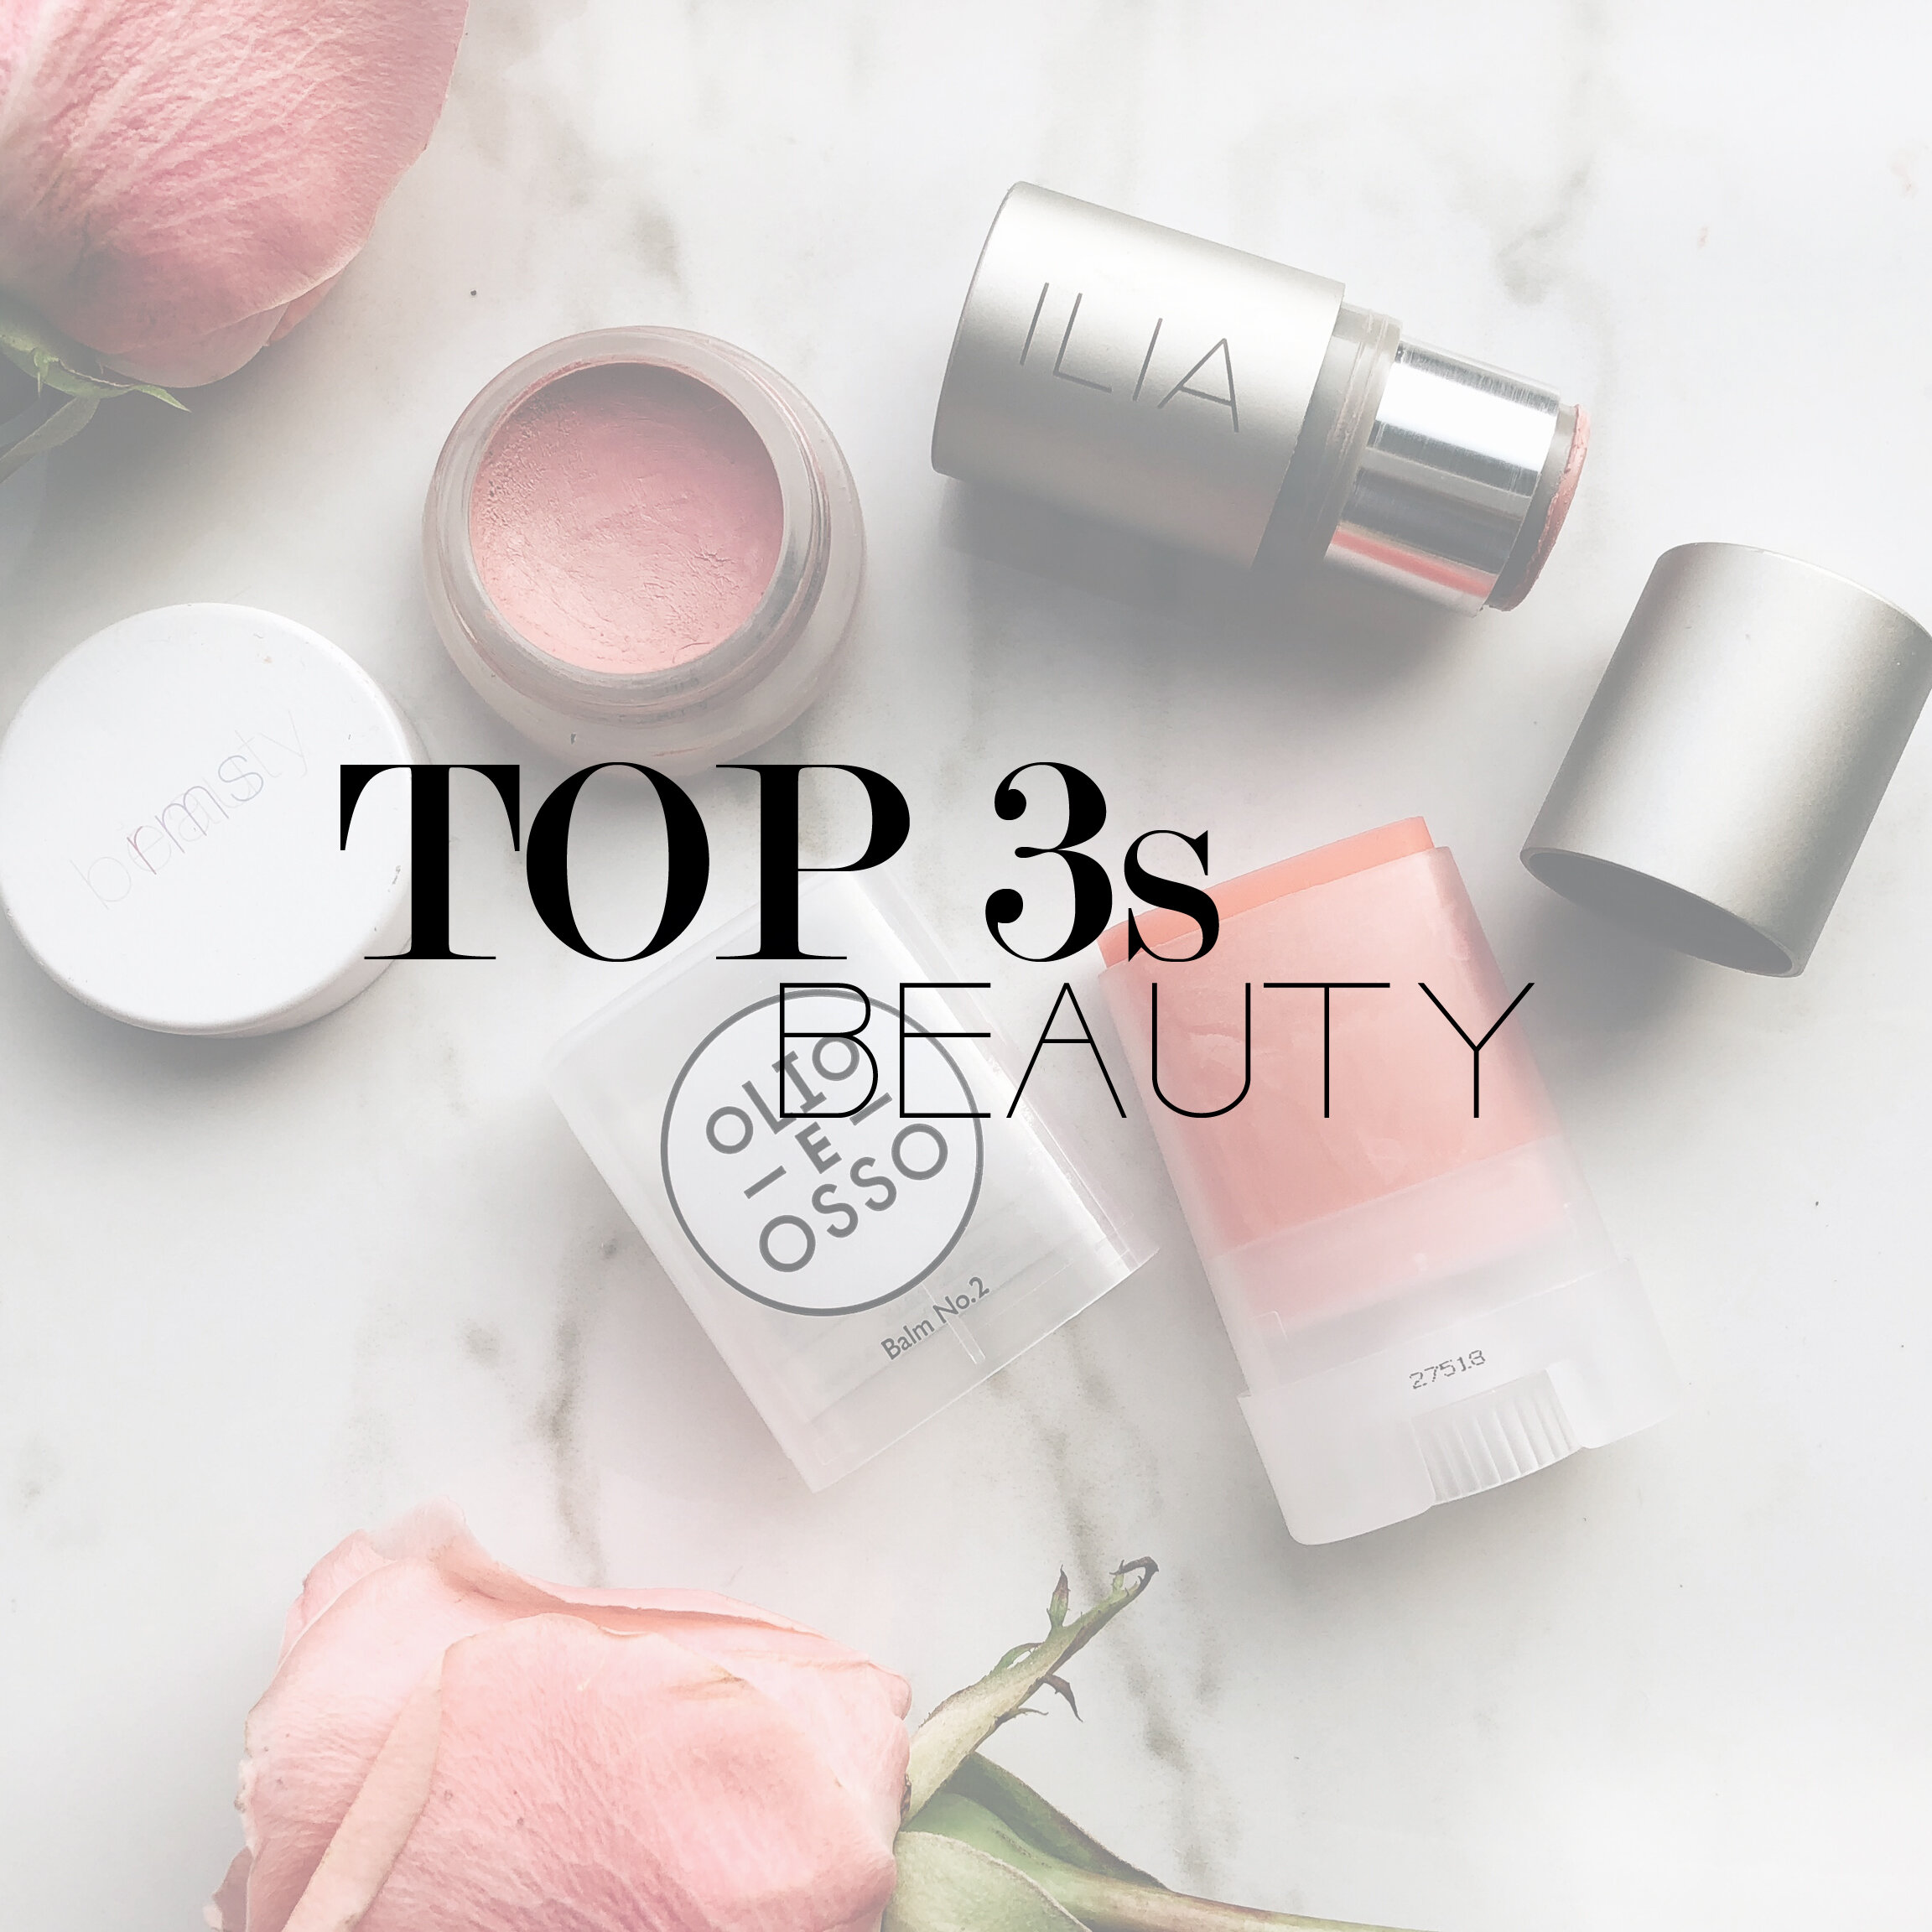 beauty-top3s-nav.jpg